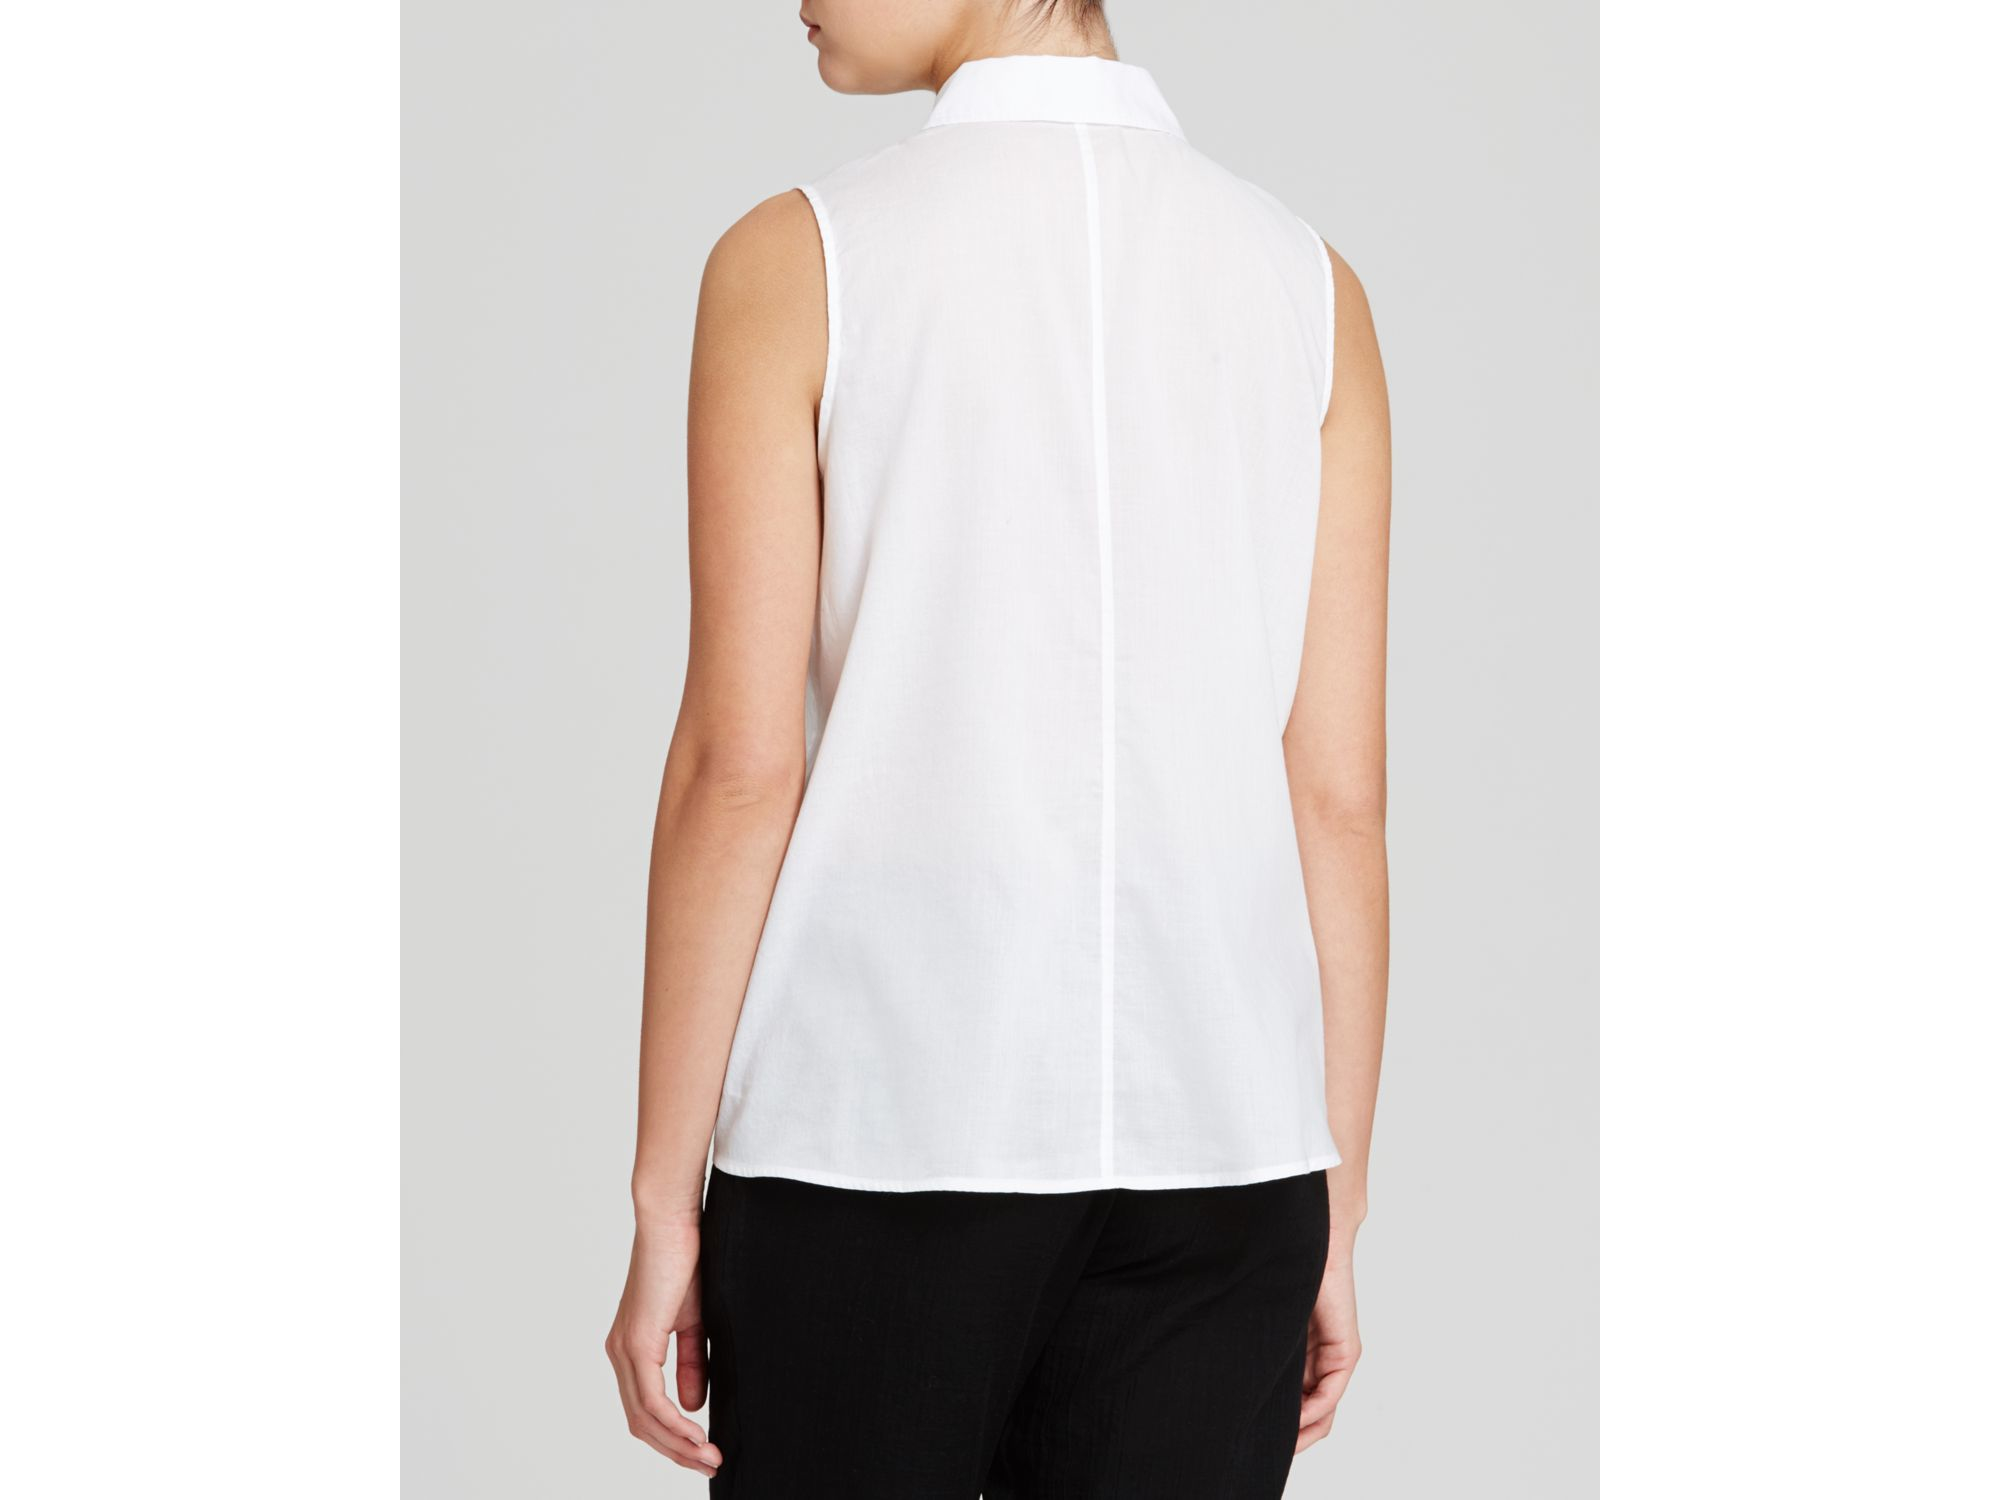 Find great deals on eBay for white sleeveless collar shirt. Shop with confidence.